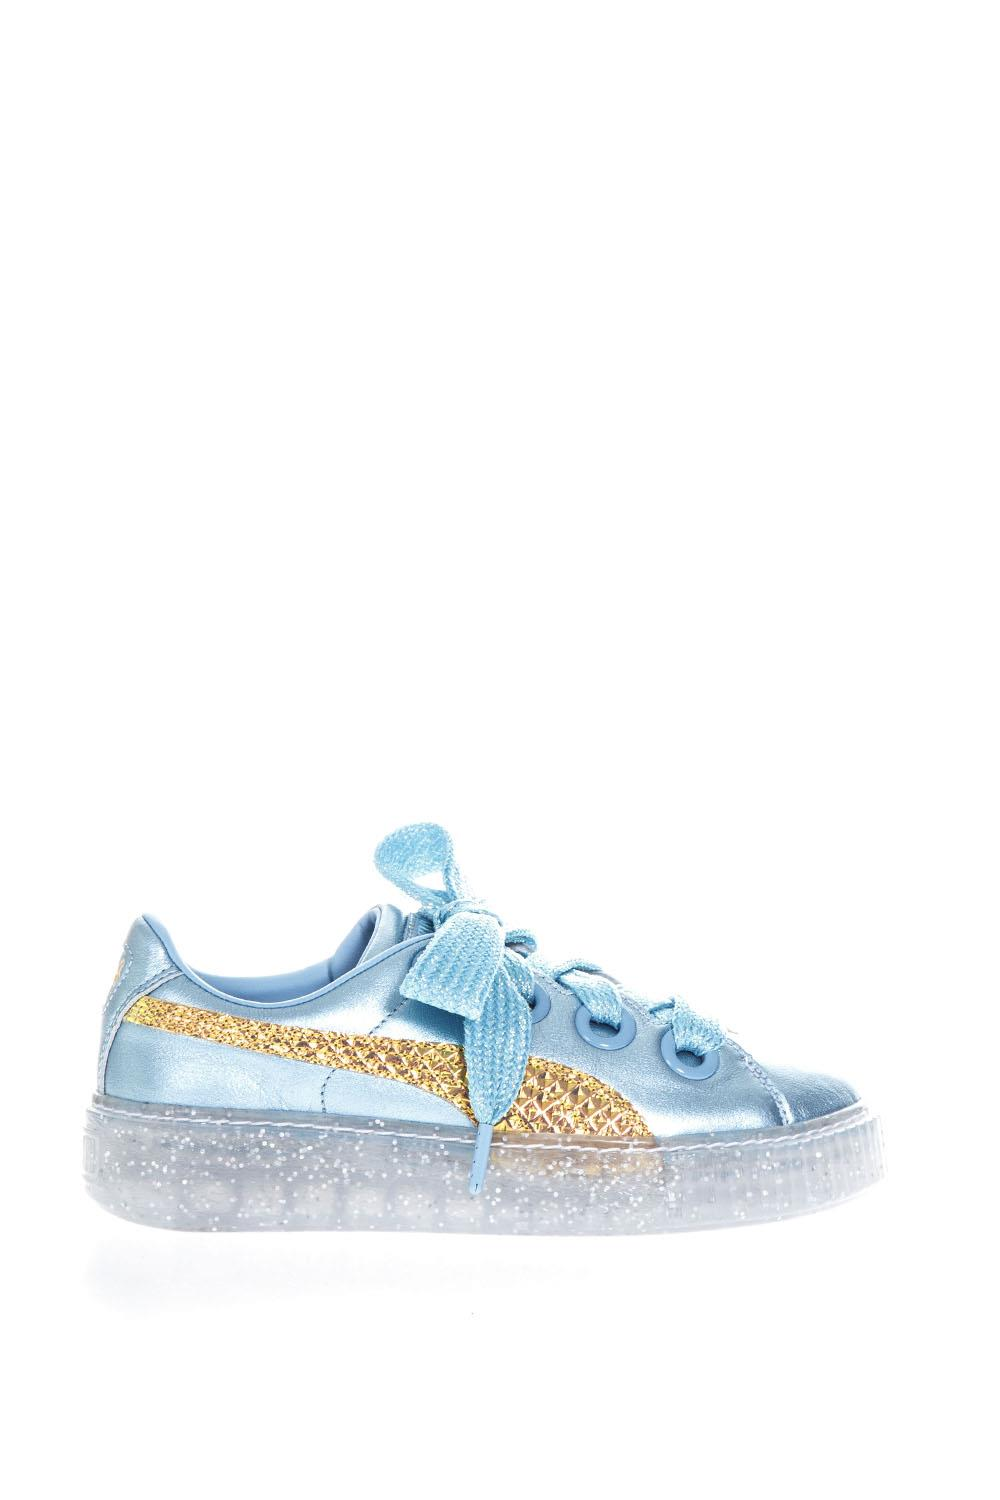 cae5bfe65dd PUMA X SOPHIA WEBSTER METALLIC LEATHER SNEAKERS SS 2018 - PUMA X SOPHIA  WEBSTER - Boutique Galiano